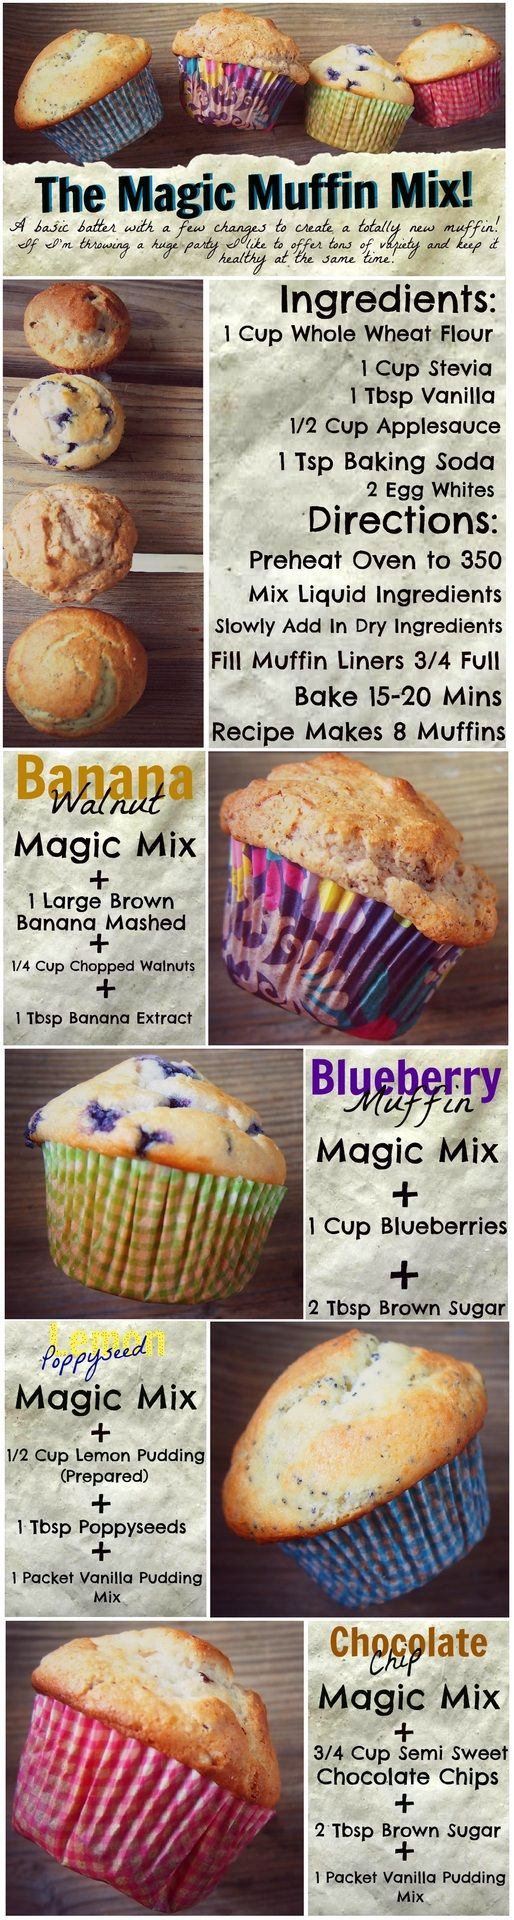 Magic Muffin Mix: This chick's site is amazing!!!